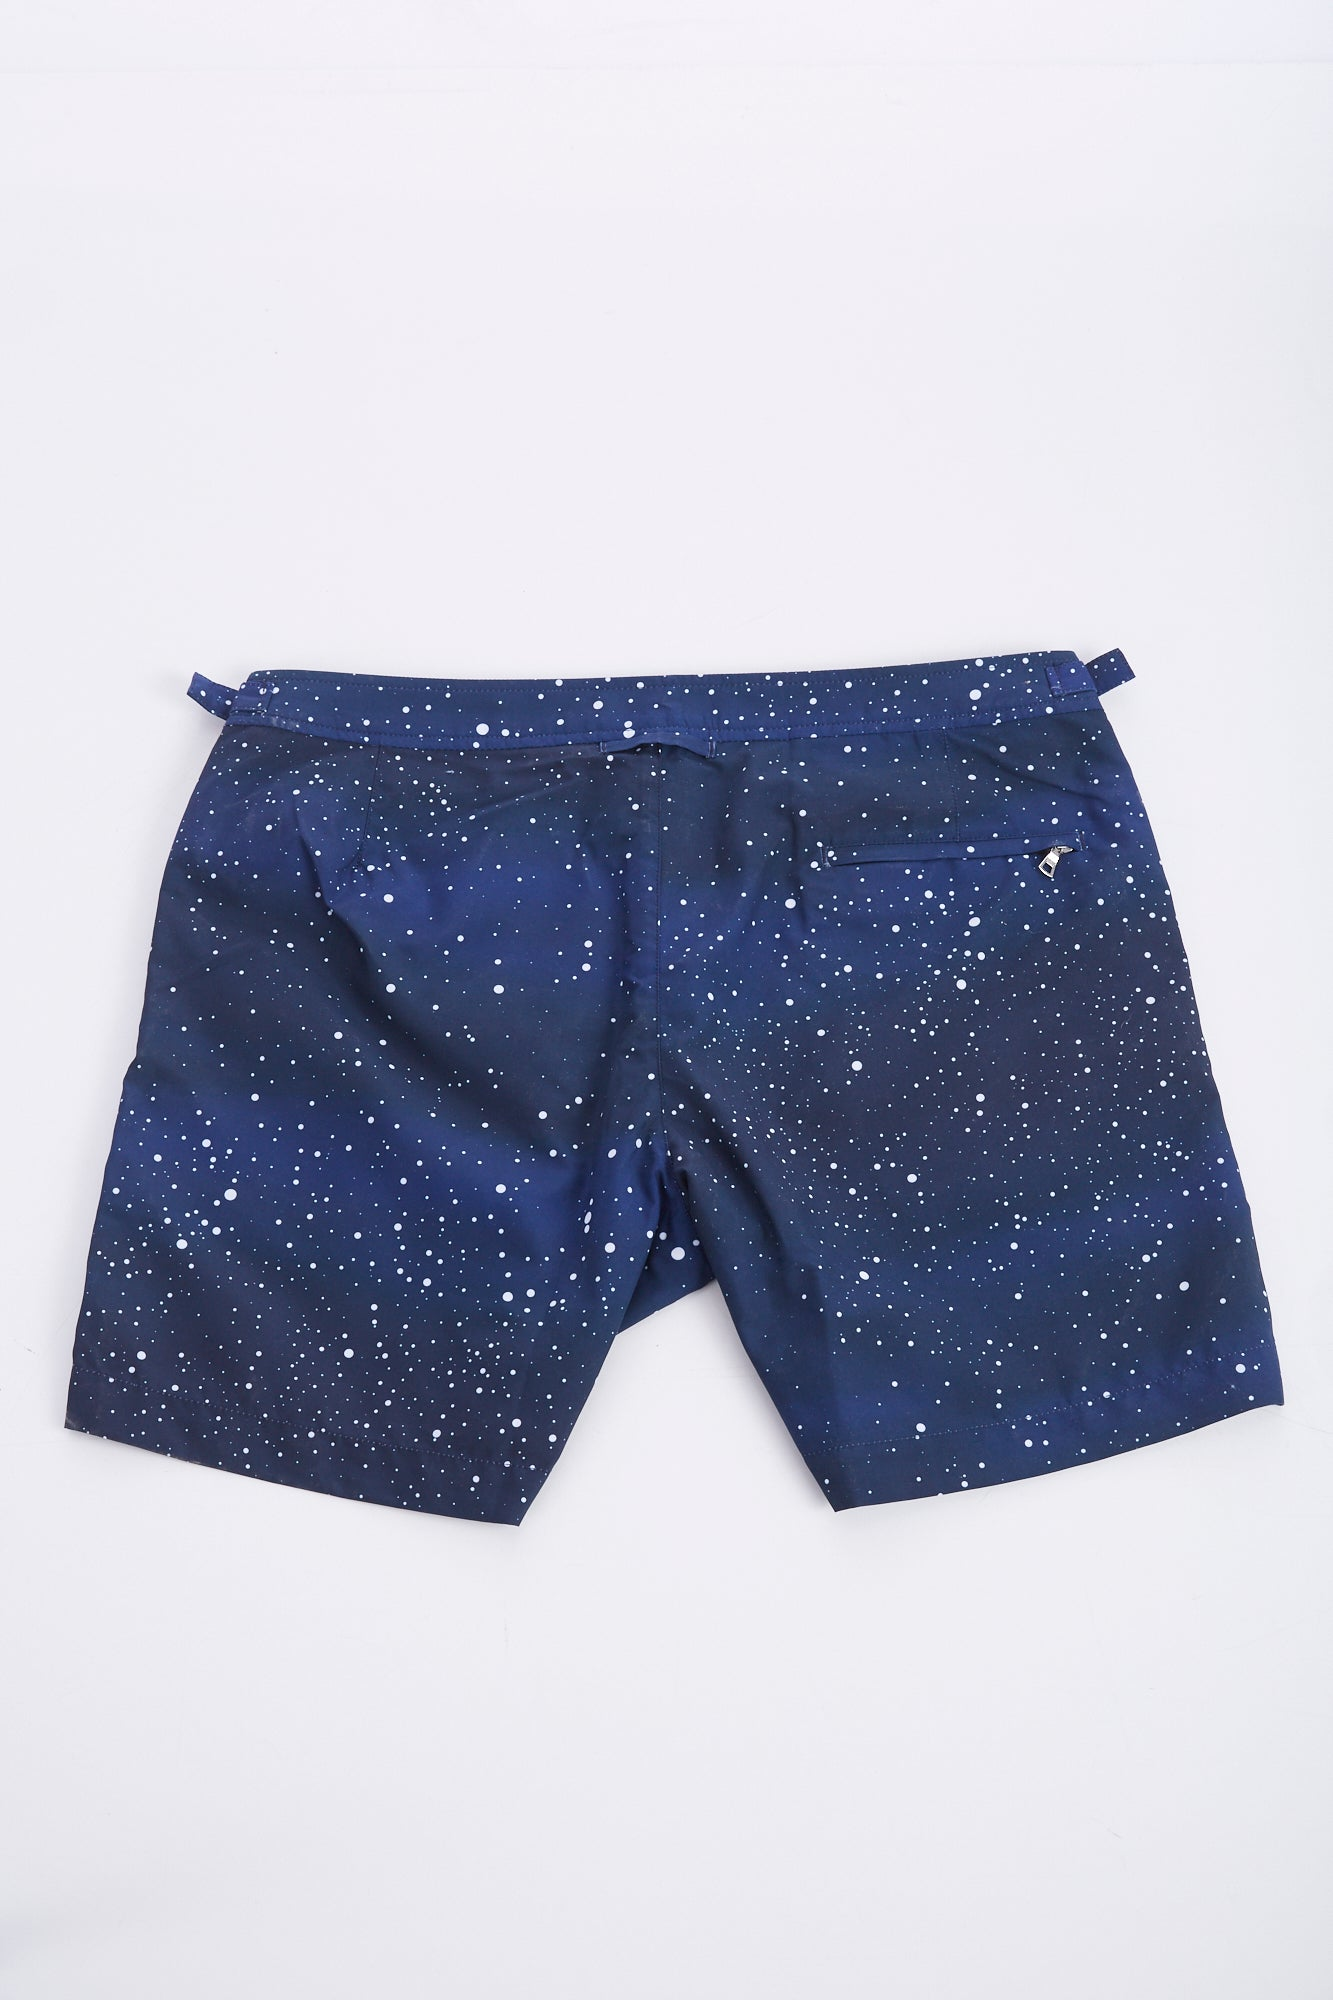 Orlebar Brown 'Bulldog' Navy Constellation Swim Shorts Back